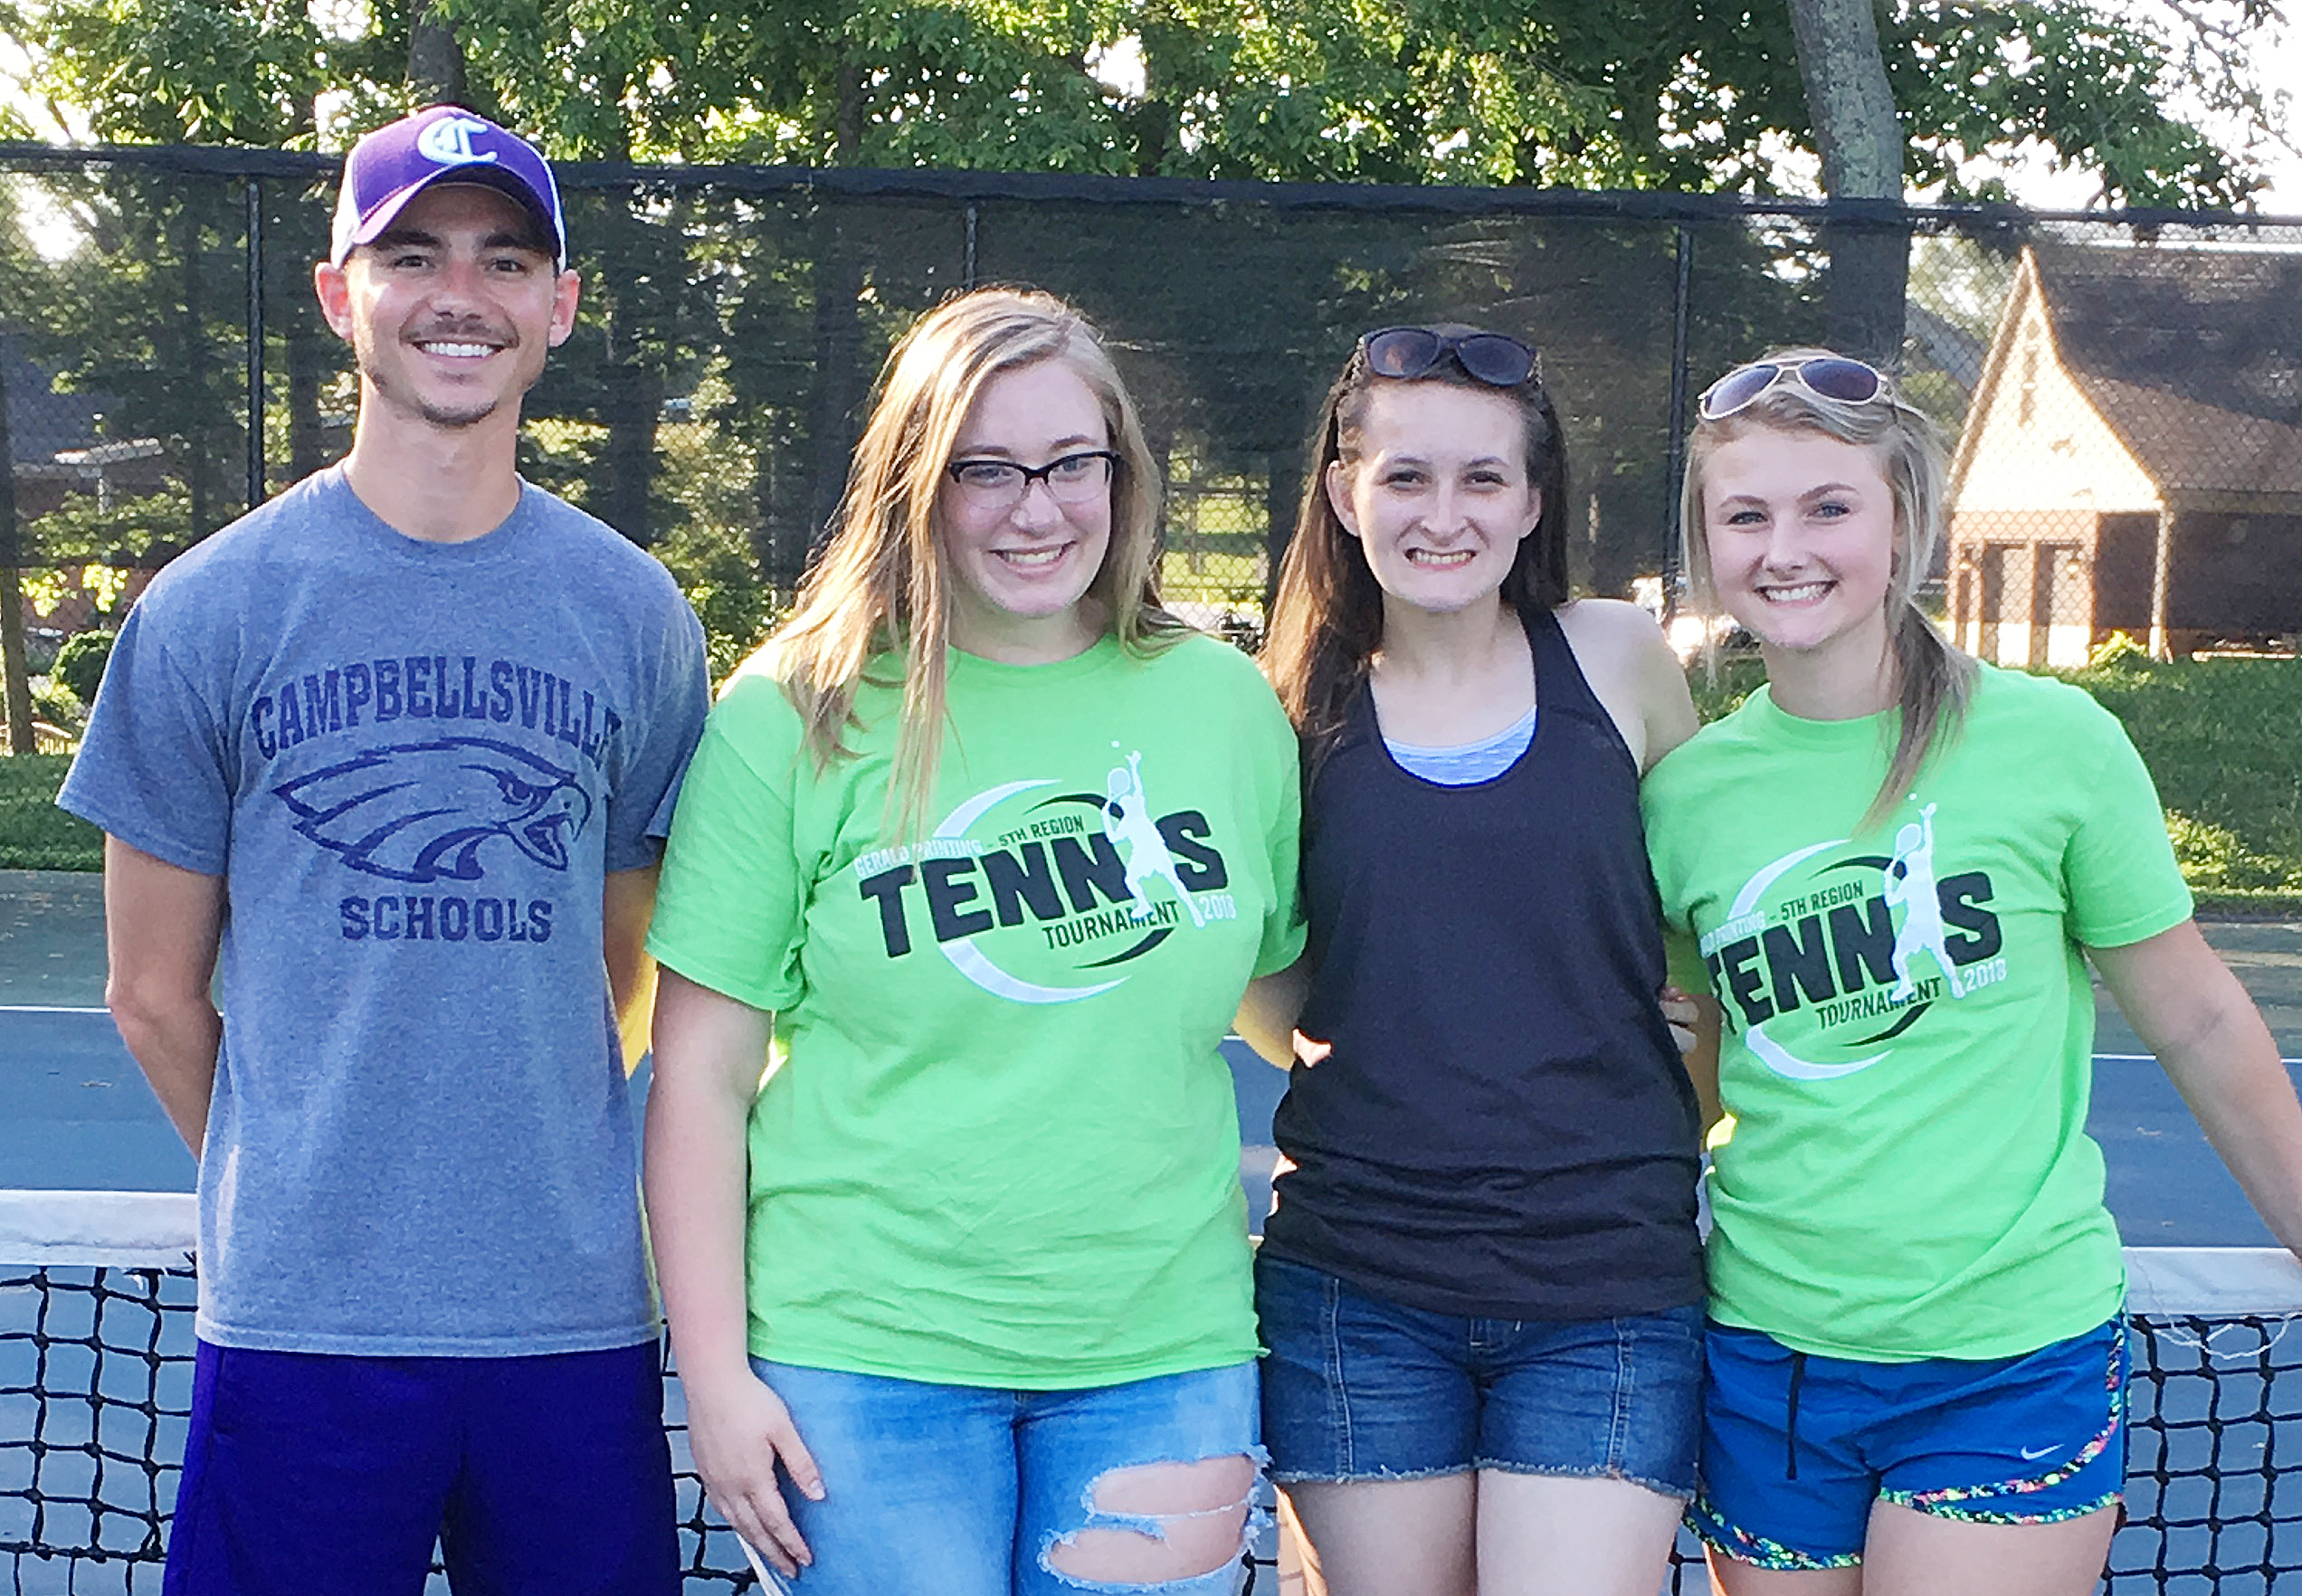 CHS girls' tennis team players for 2017-2018 were recently honored at a banquet for their success this season. From left are coach Bradley Harris, sophomore Samantha Johnson, senior Kimberly Harden and sophomore Victoria Cox. Absent from the photo is senior Sara Farmer.